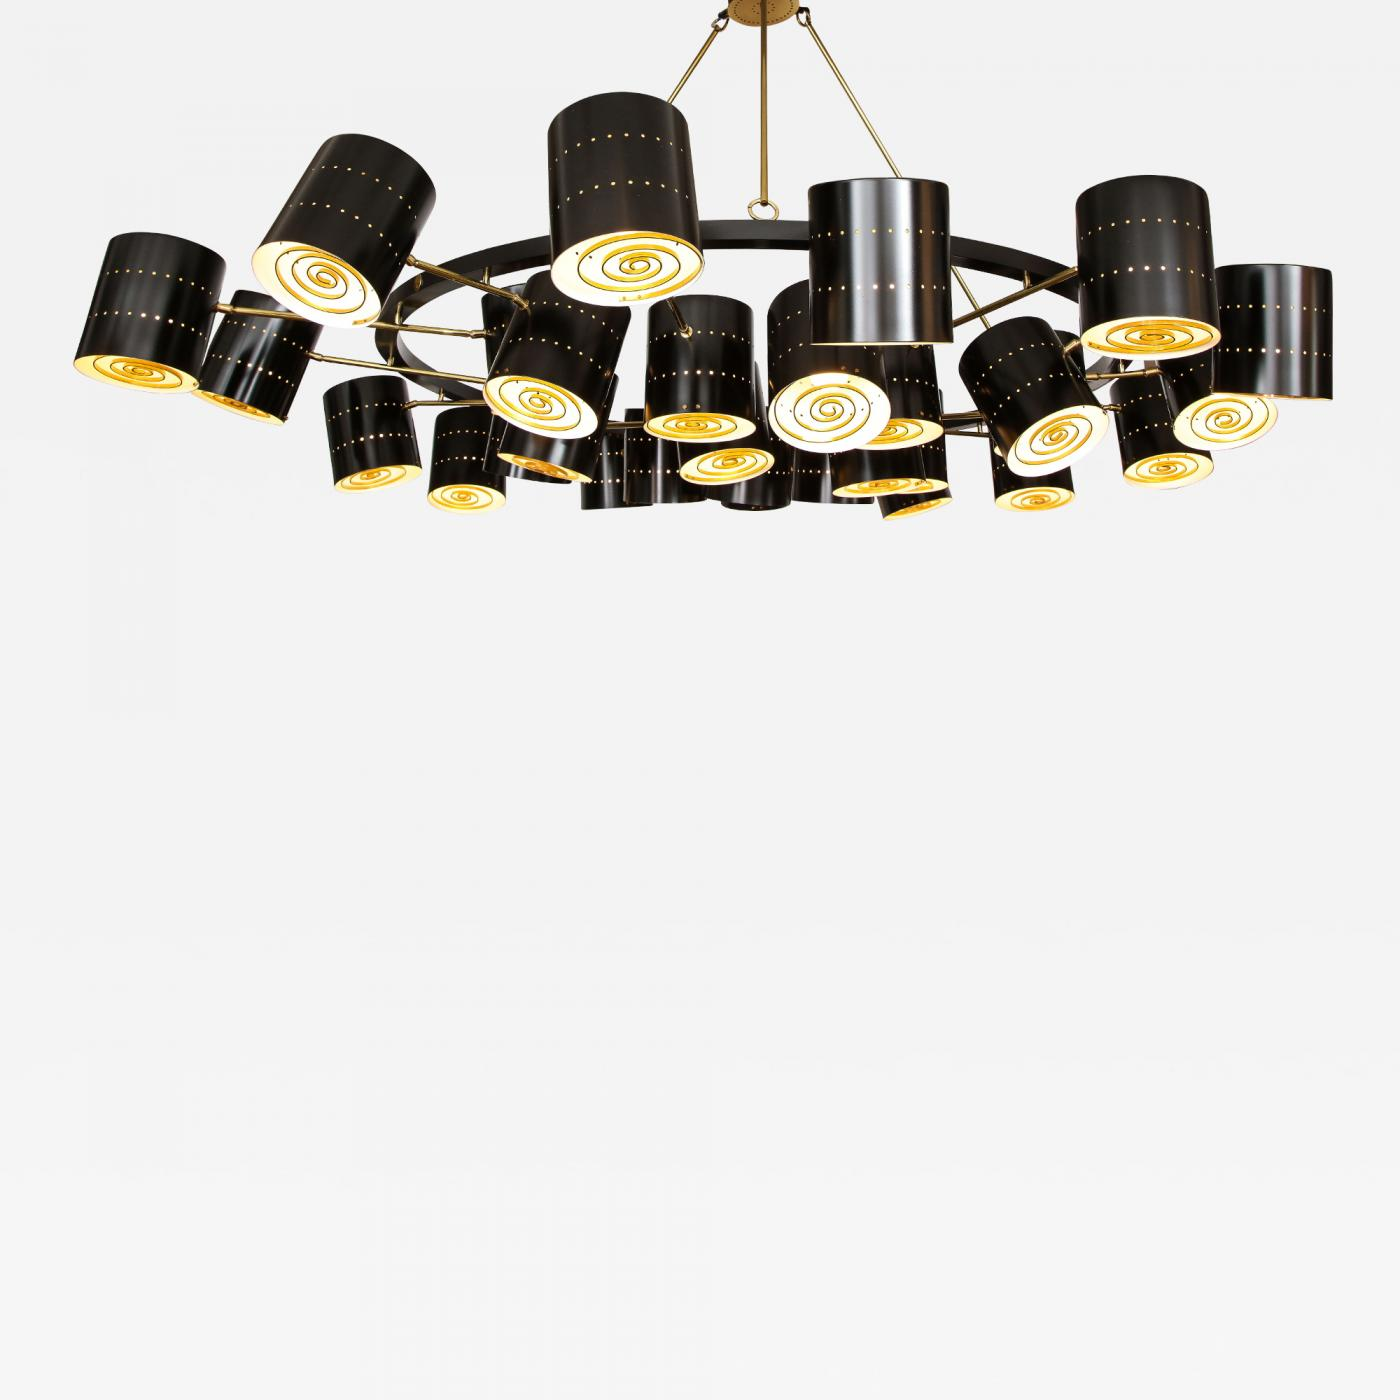 Image of: Stan Usel Contemporary Chandeliers Circular By Stan Usel